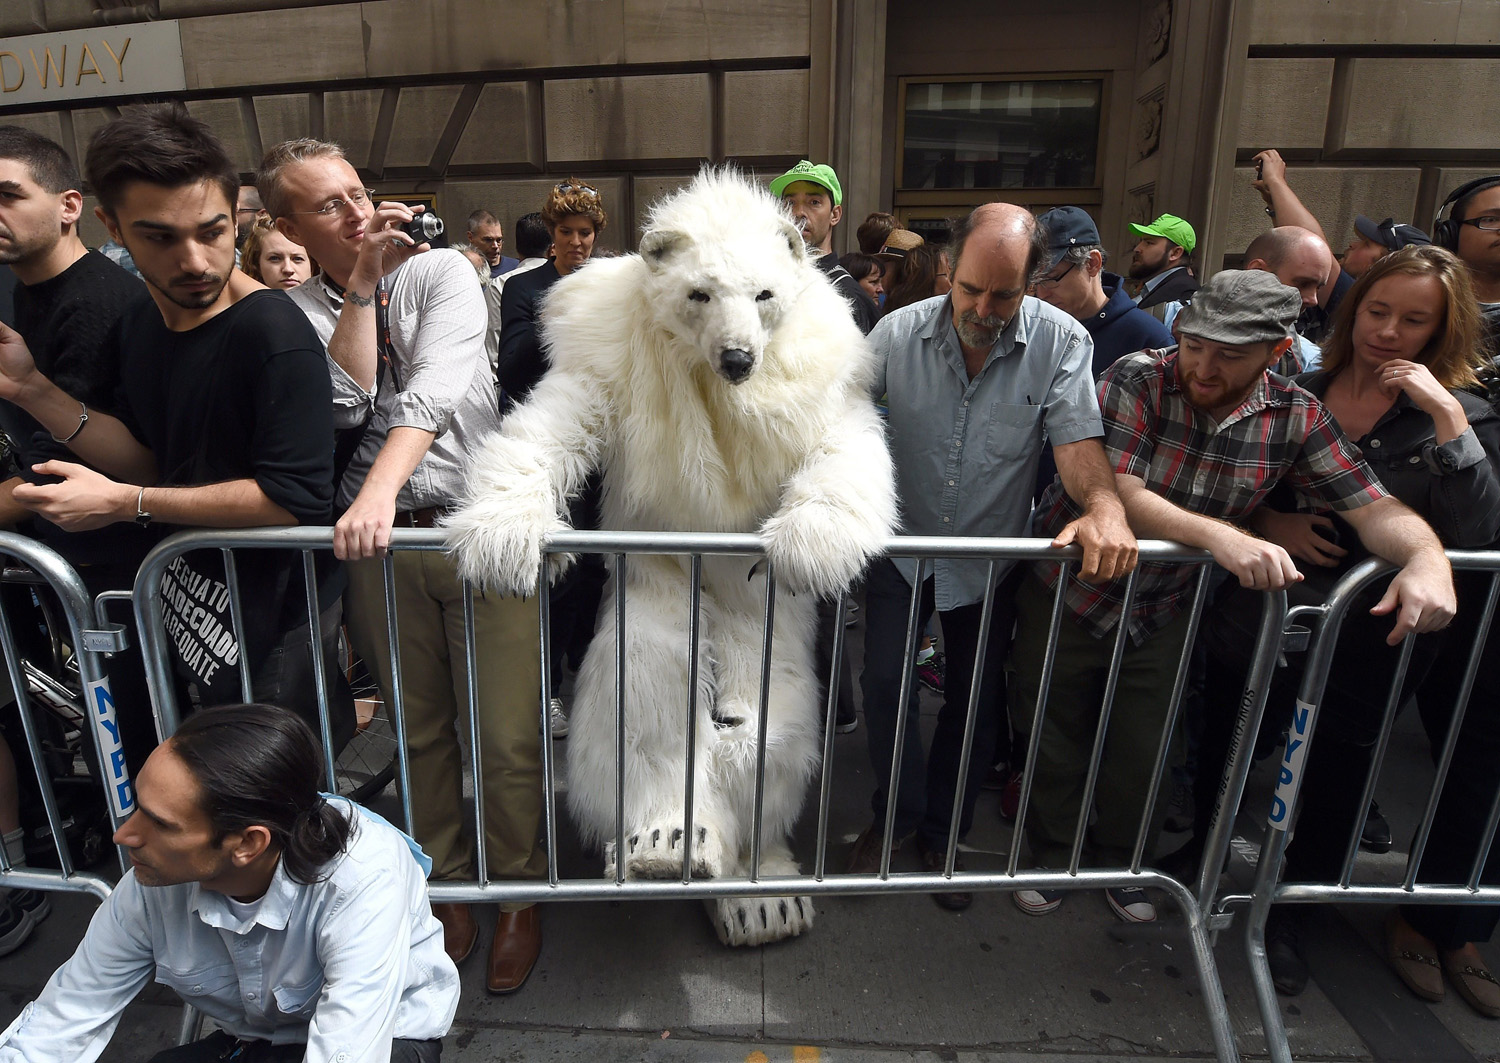 A man dressed as a Polar Bear climbs a barricade as protestors take part in the  Flood Wall Street  demonstrations in New York City on Sept. 22, 2014.